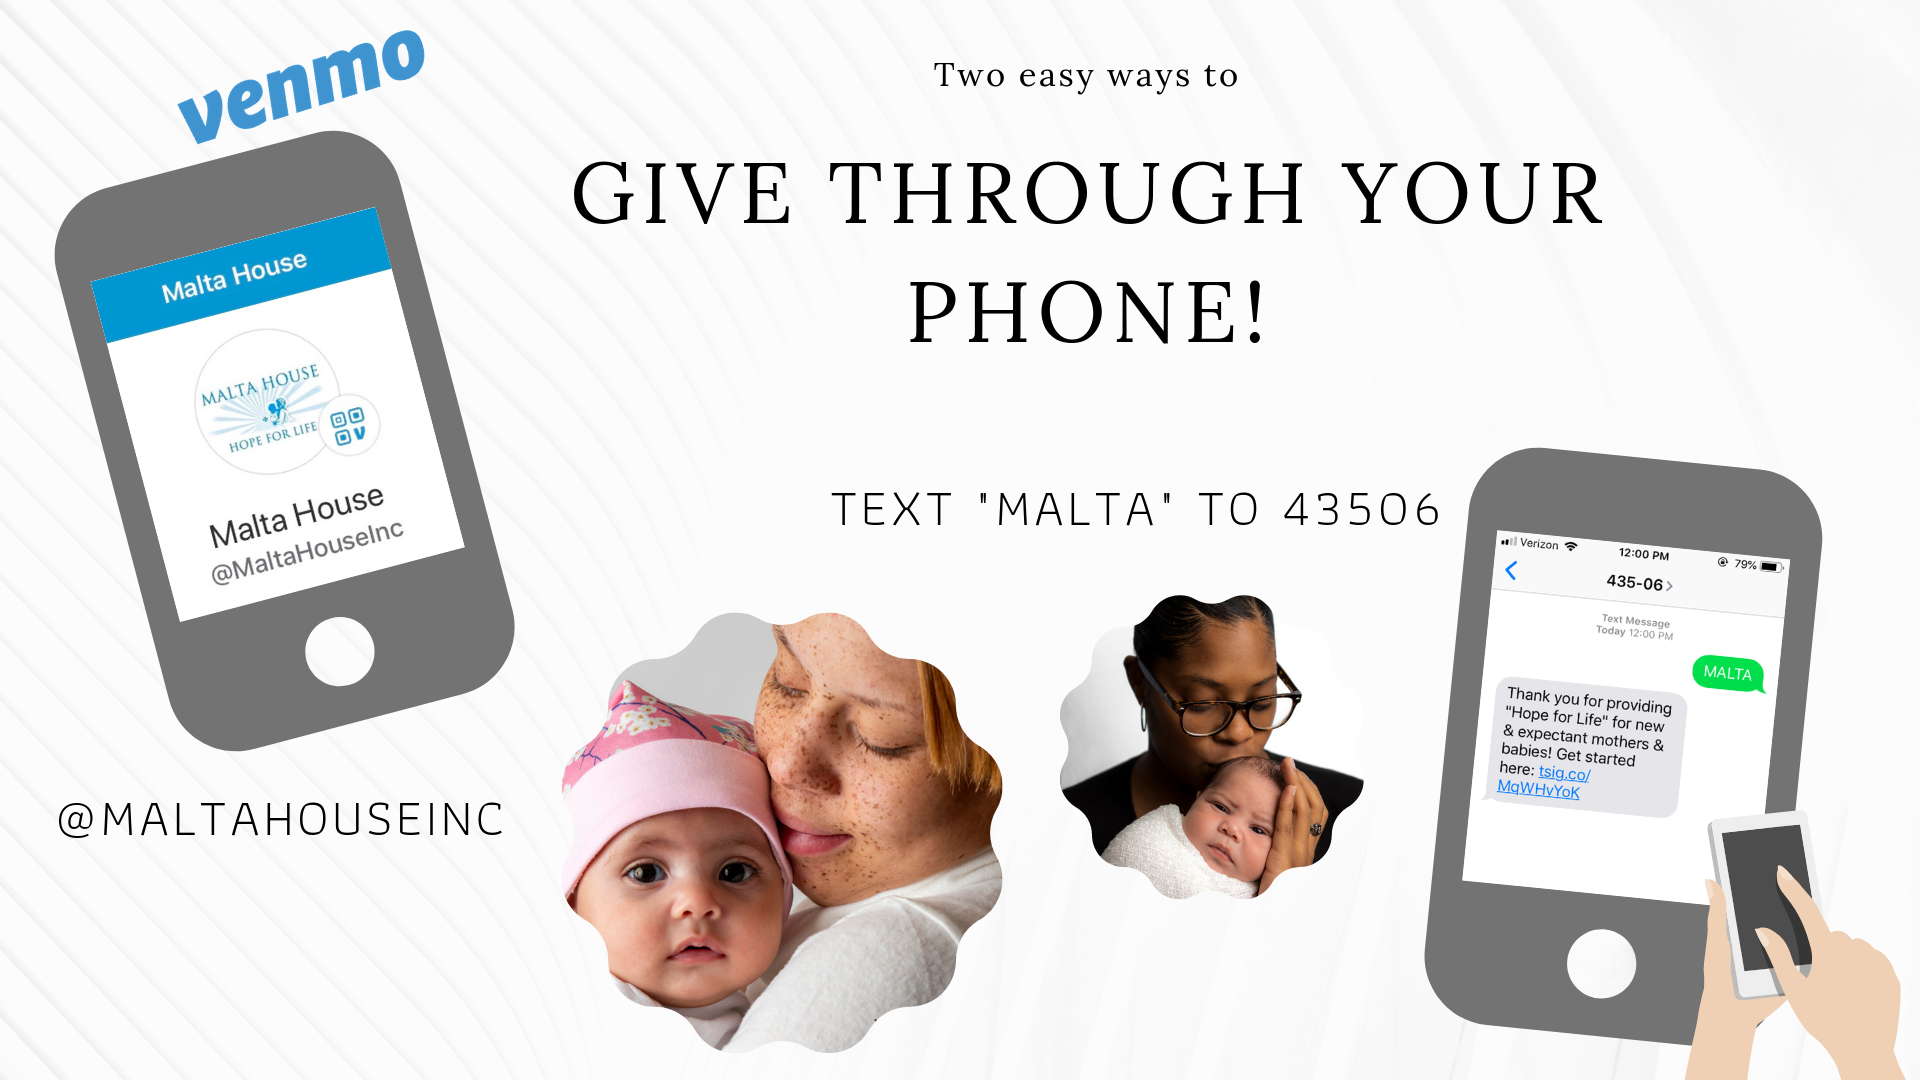 Two new mobile ways to give to Malta House